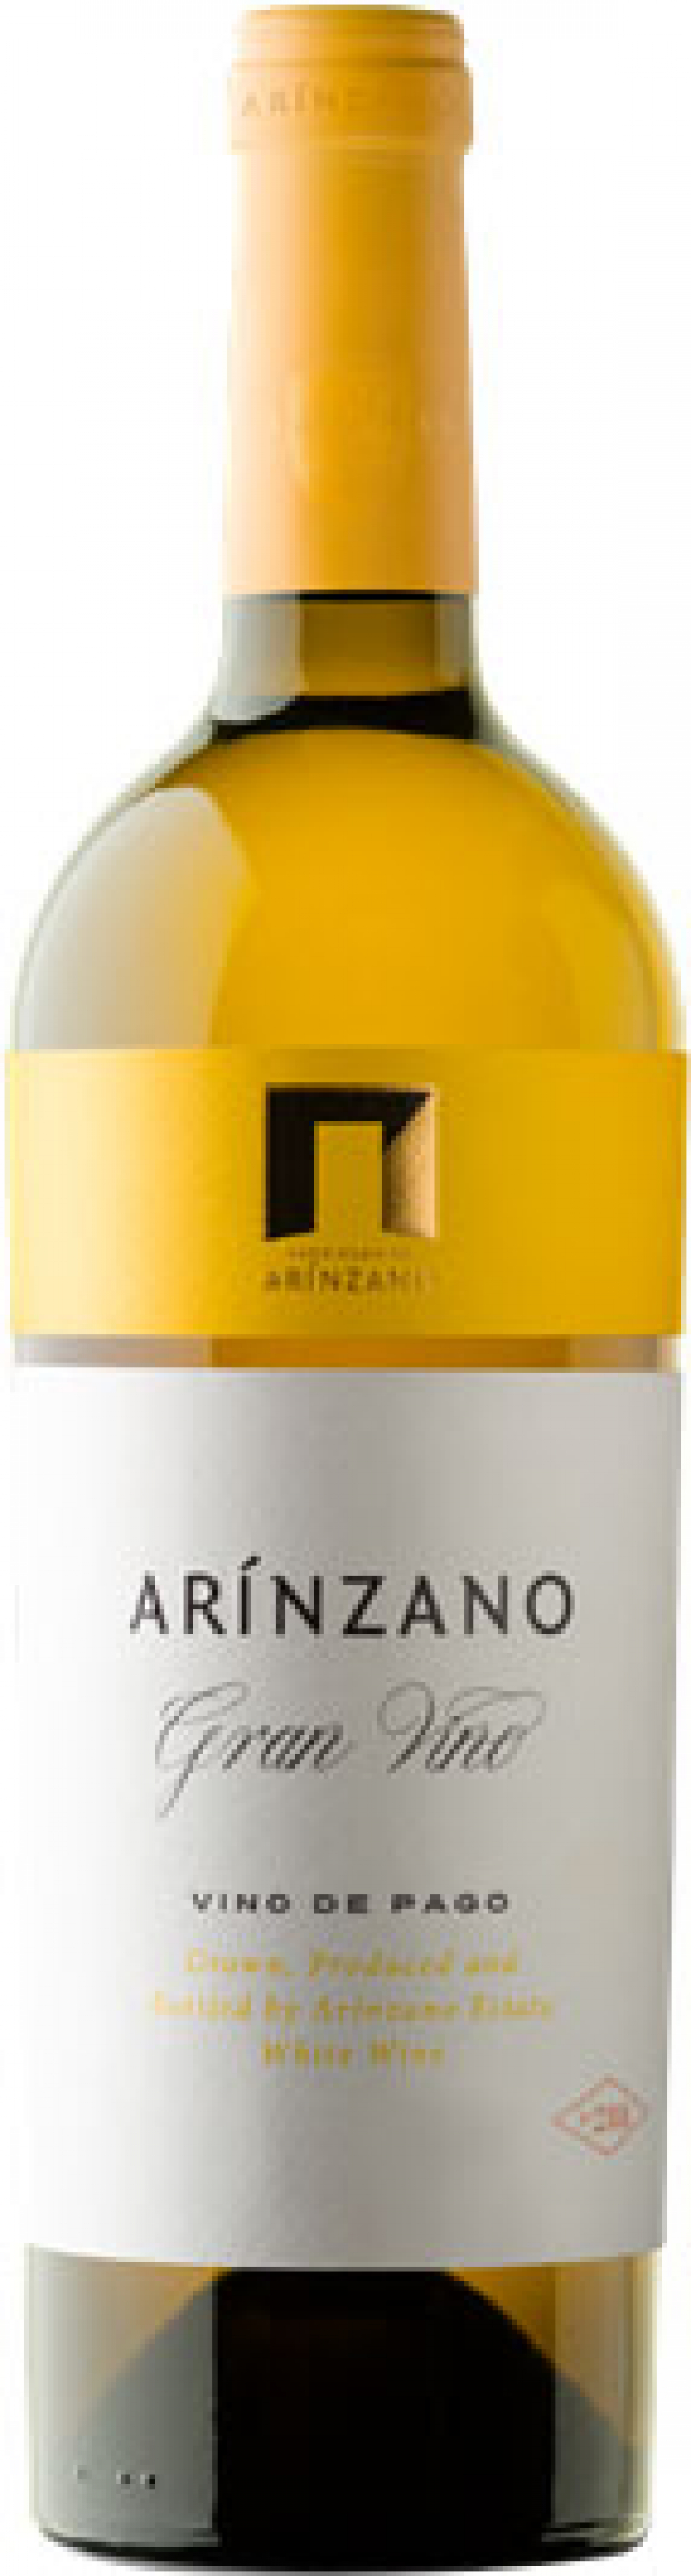 Arinzano - Gran Vino Blanco 2010 (75cl Bottle)